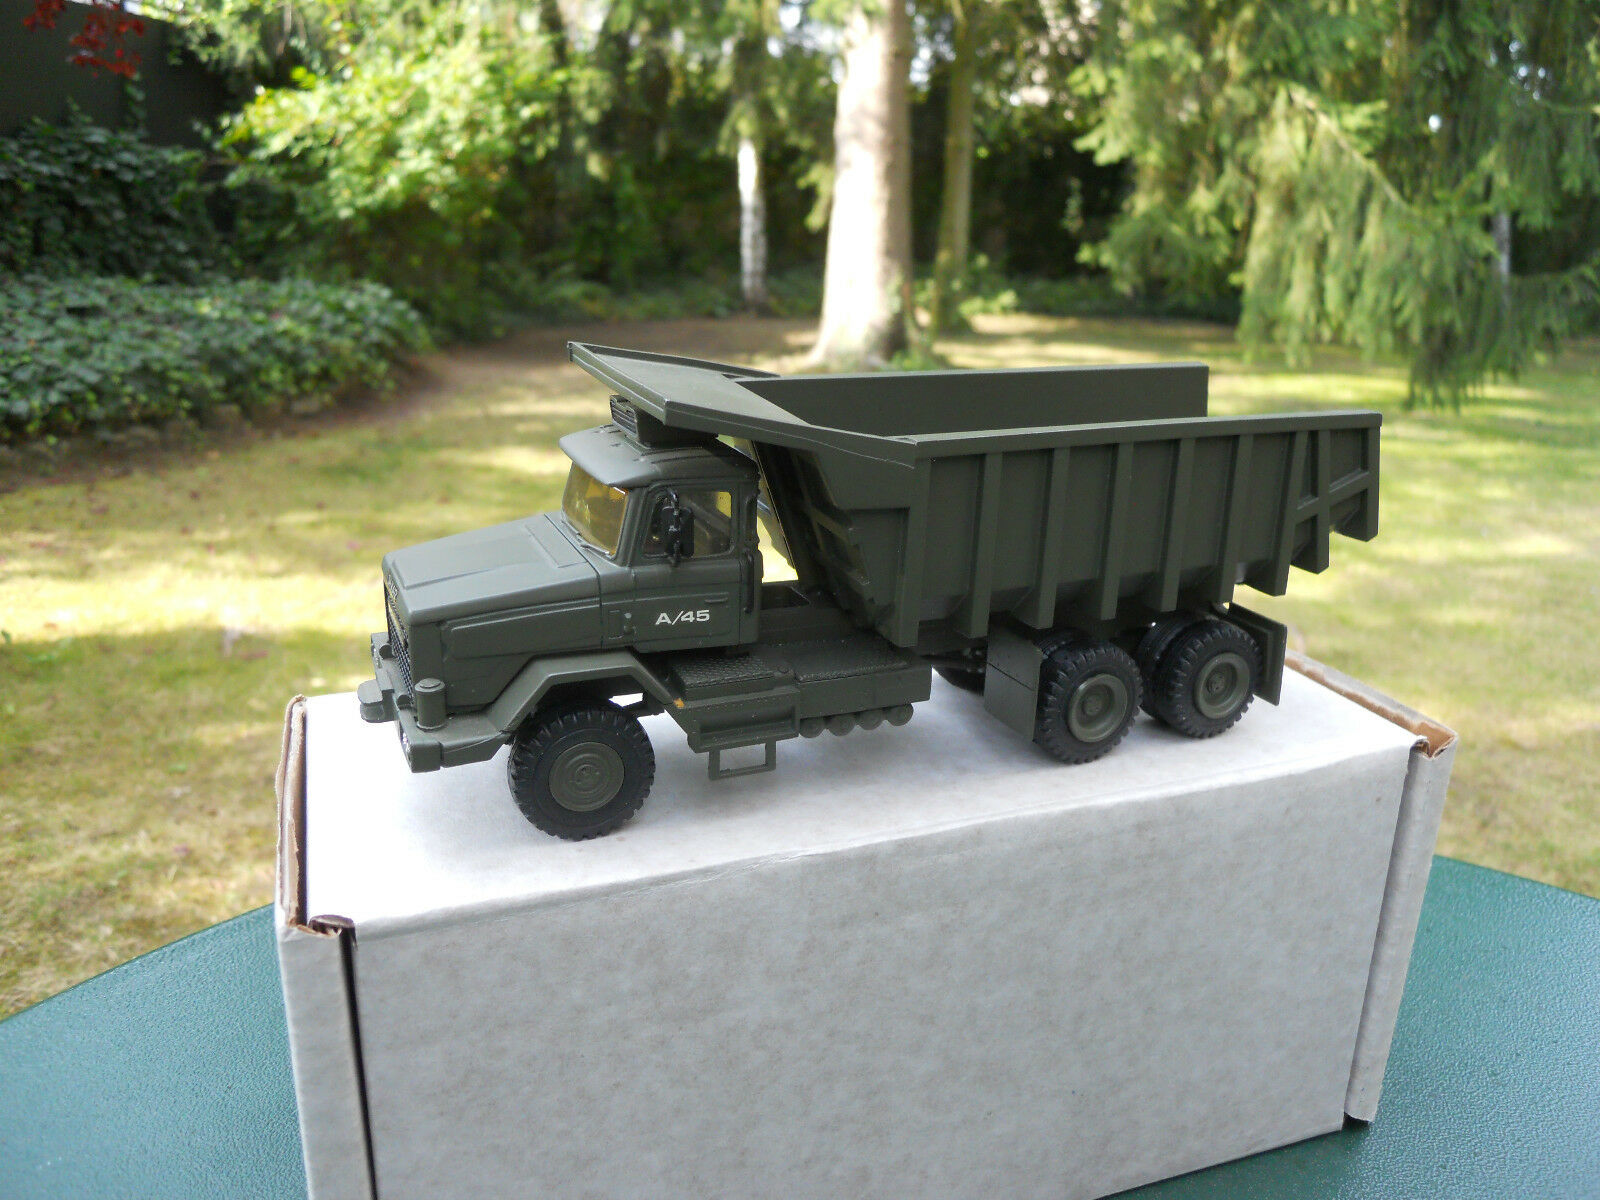 VEHICULE MILITAIRE ASAM REF ROC 99  SCAMMEL S 24 6X6  TOMBEREAU BRITISH ARMY